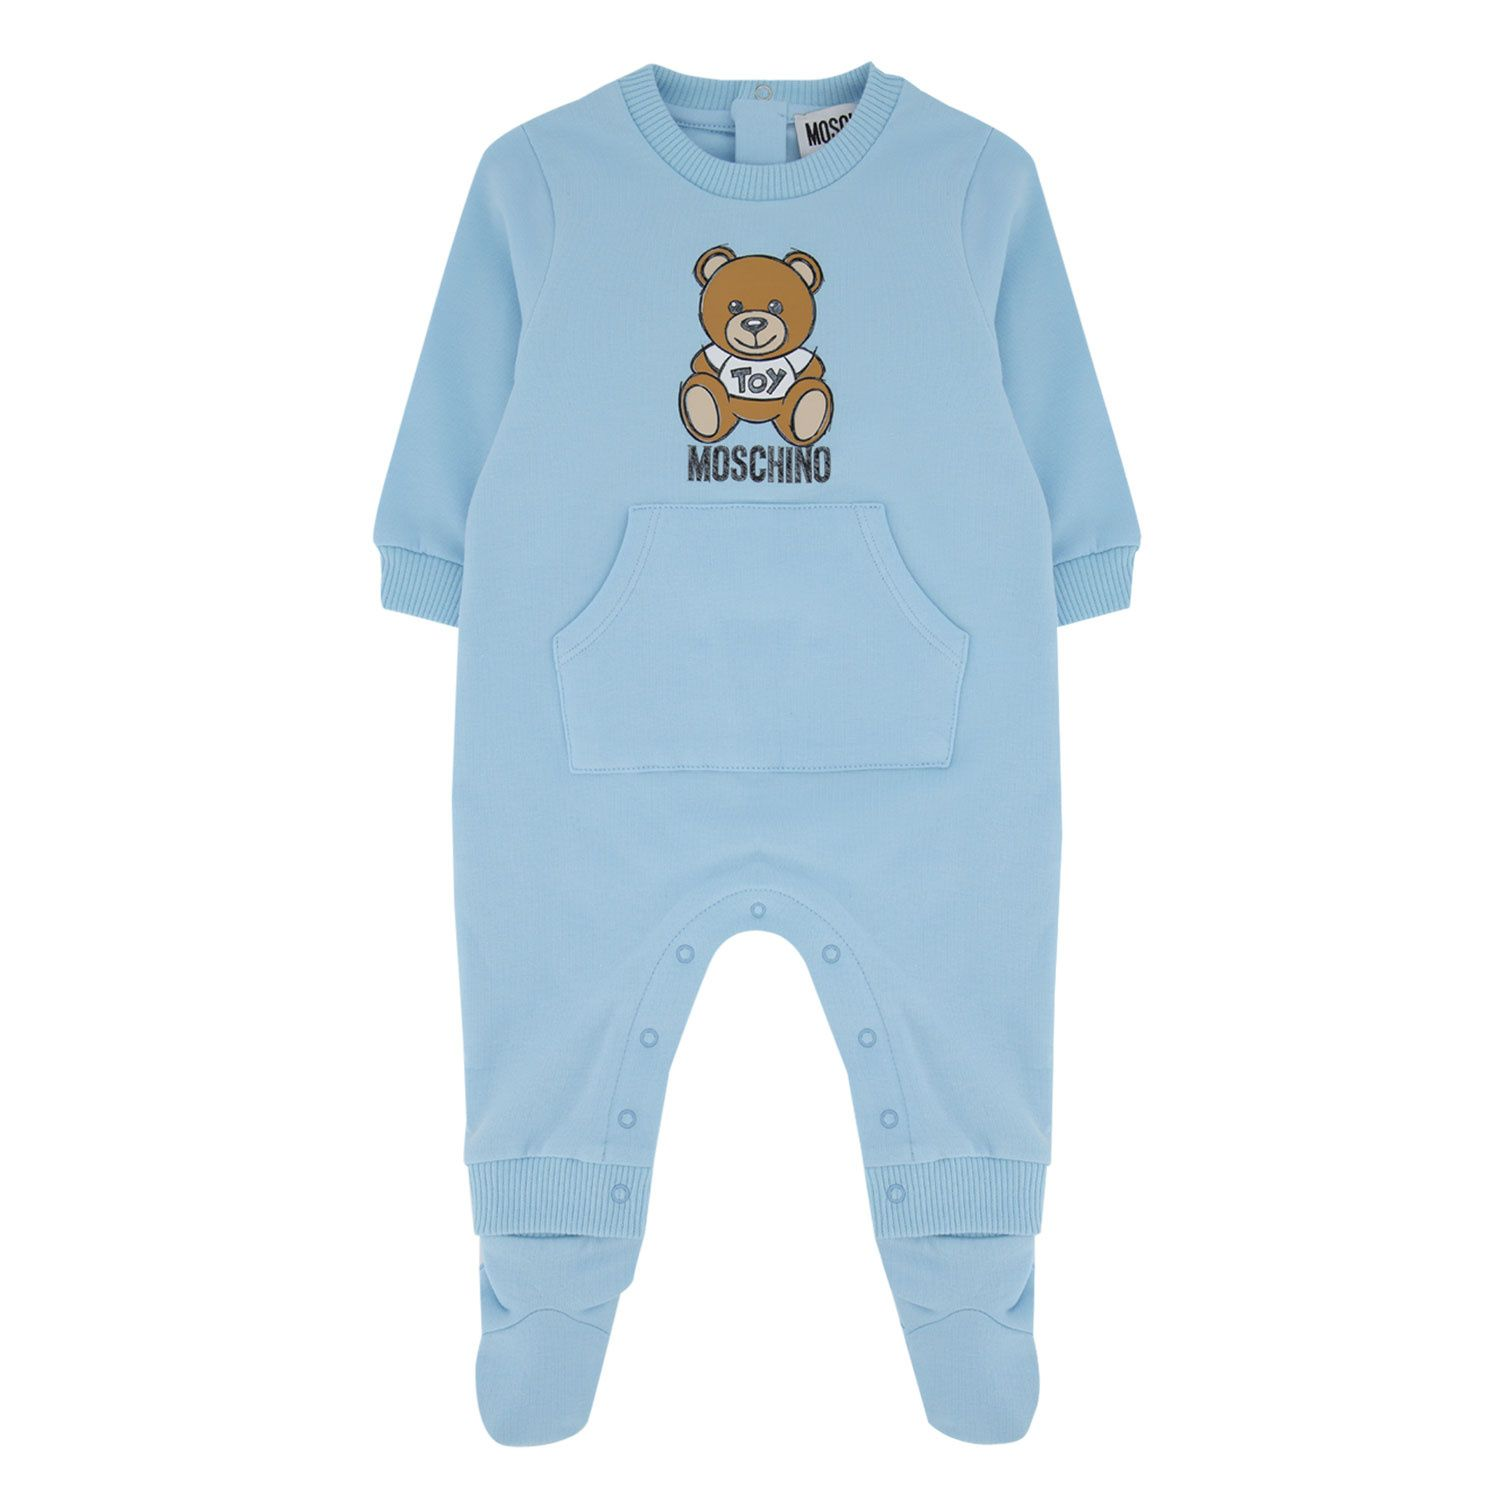 Picture of Moschino MUT01M baby playsuit light blue